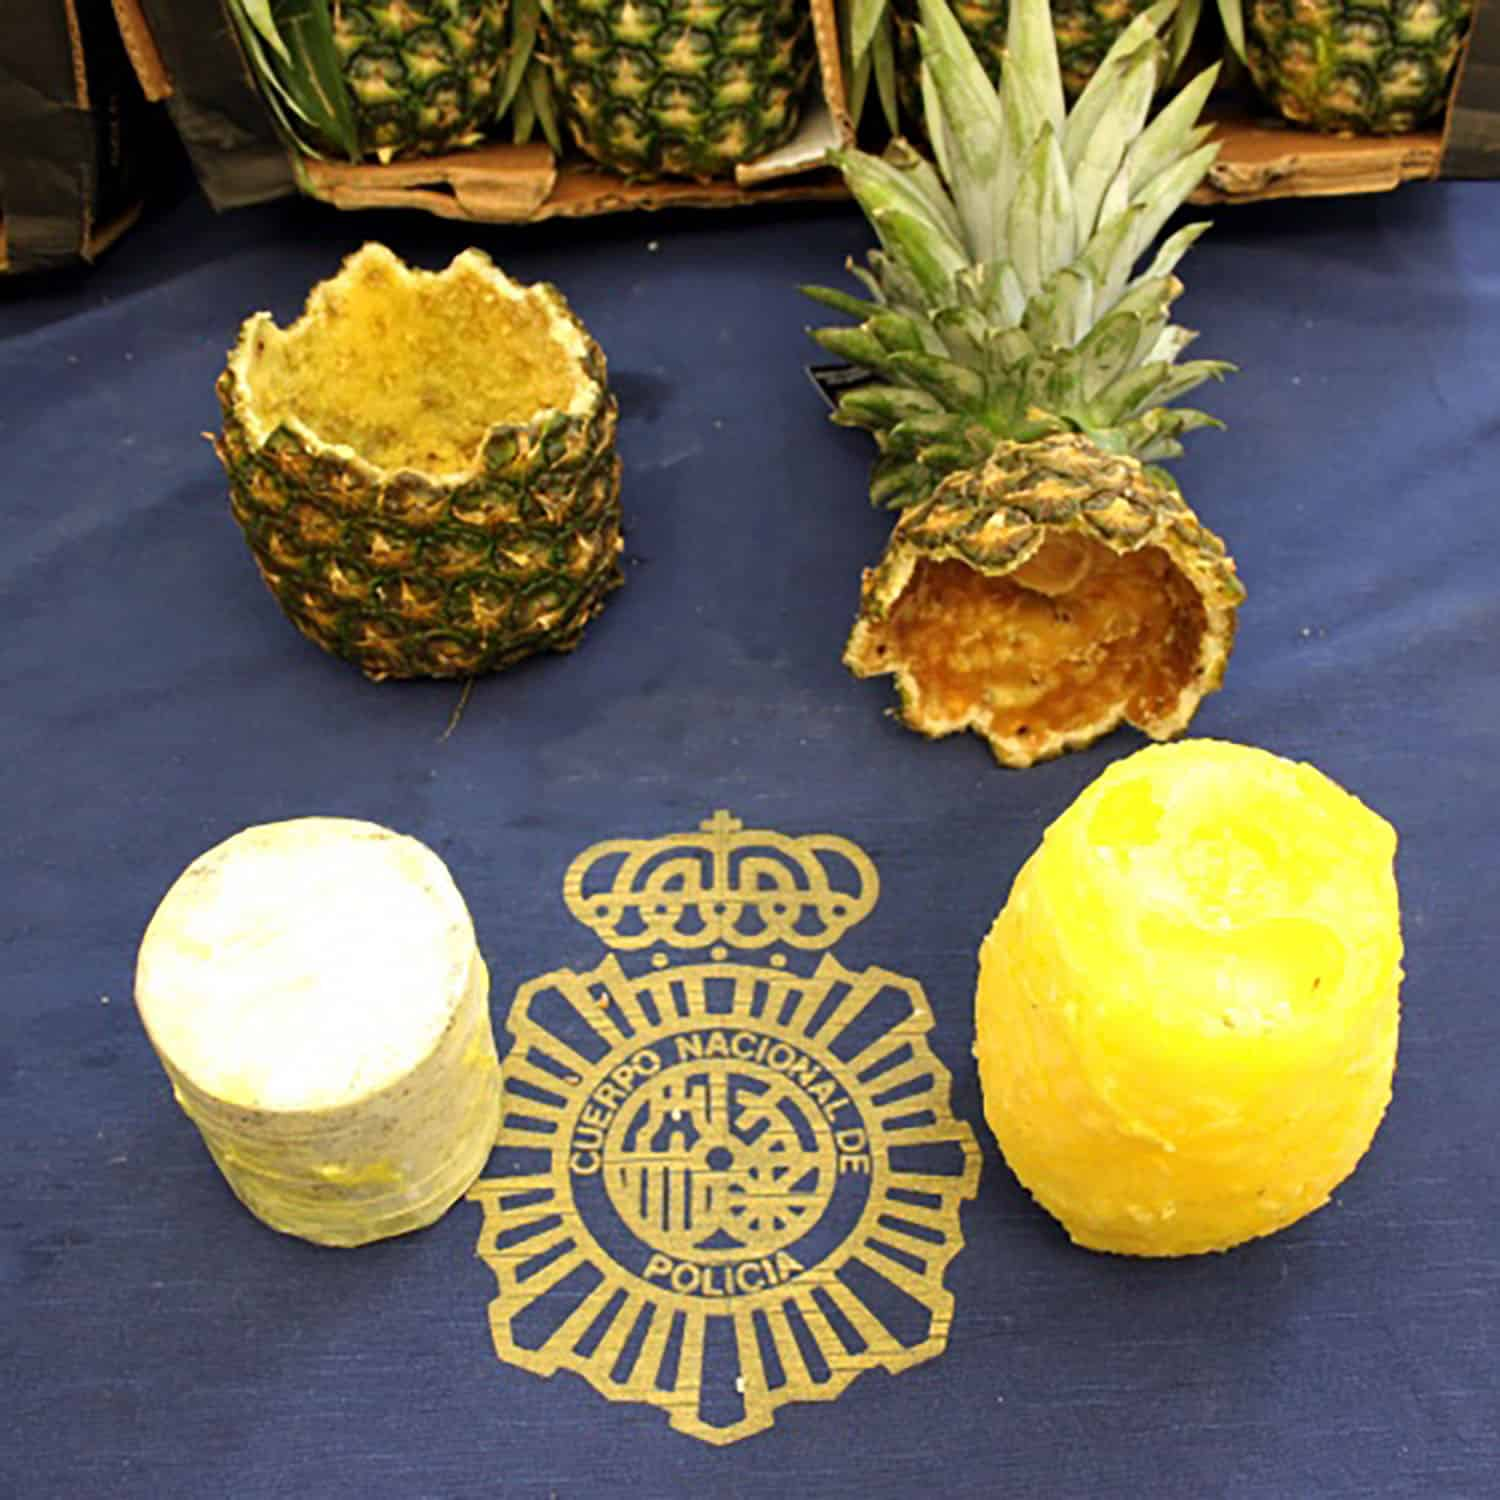 Cocaine-stuffed pineapples shipped from Costa Rica to Europe